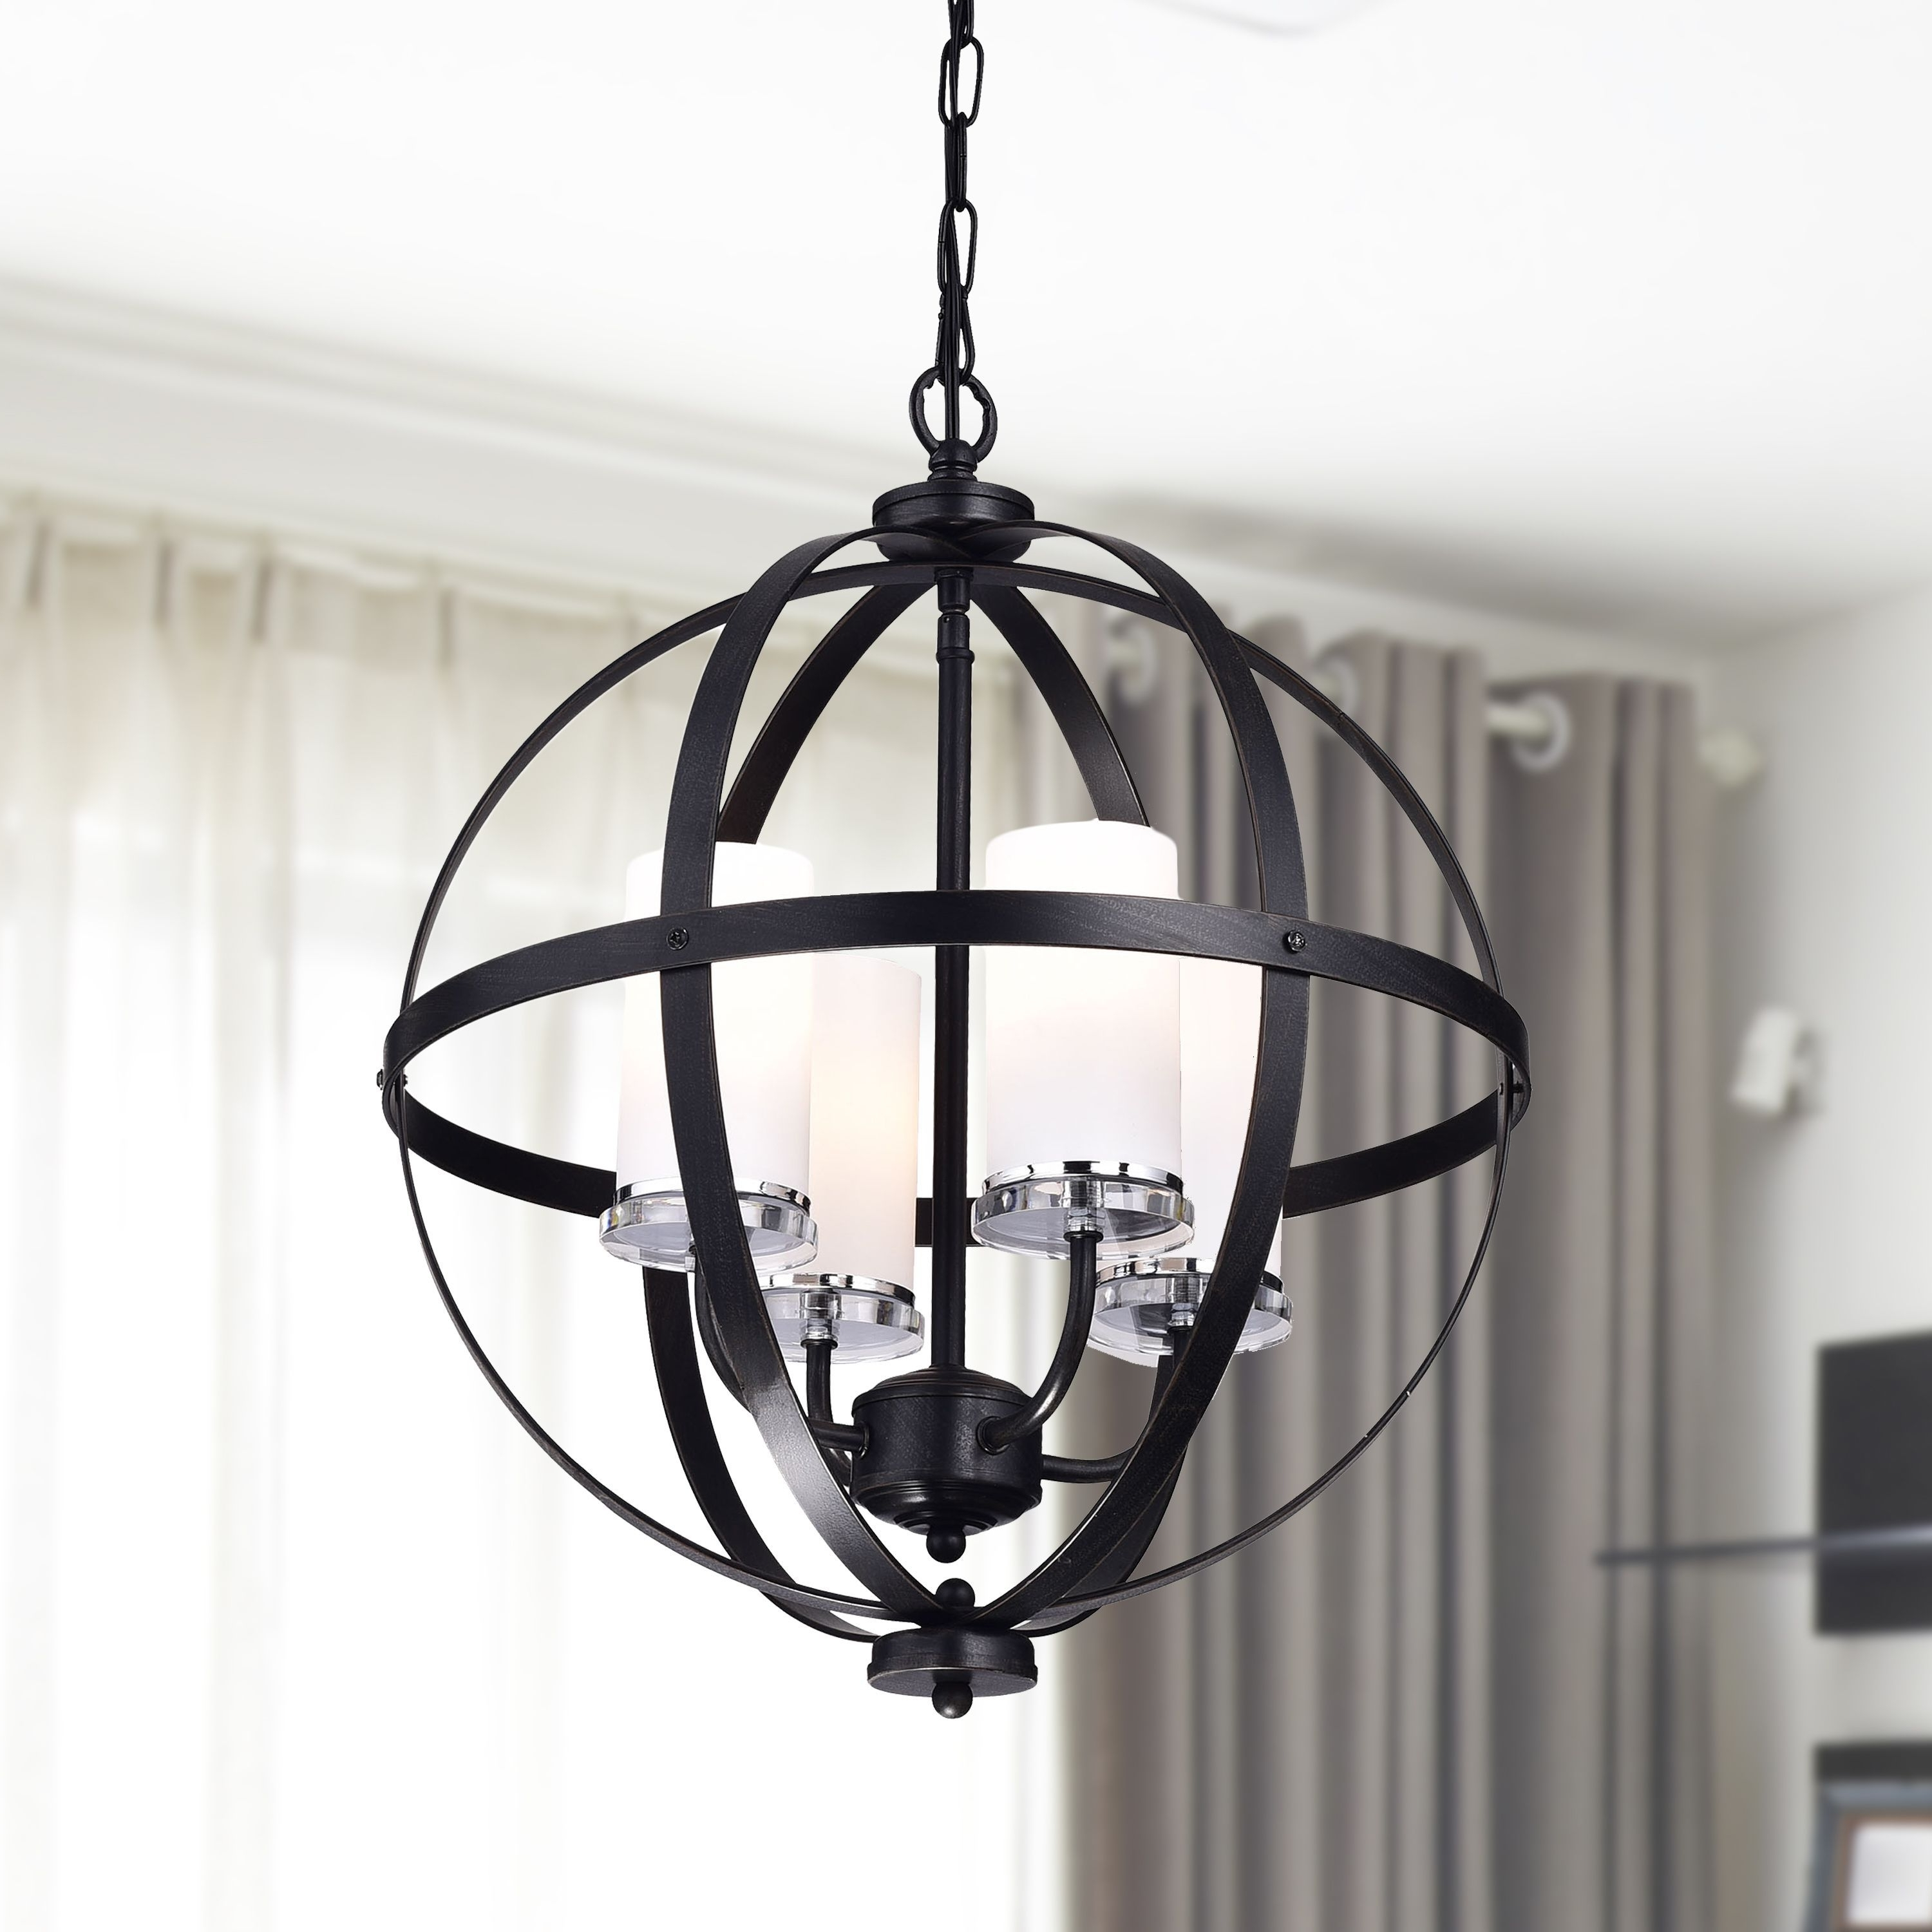 Benita Antique Black Iron Orb Chandelier With Glass Globe (Antique With Regard To Well Liked Antique Black Chandelier (View 5 of 15)